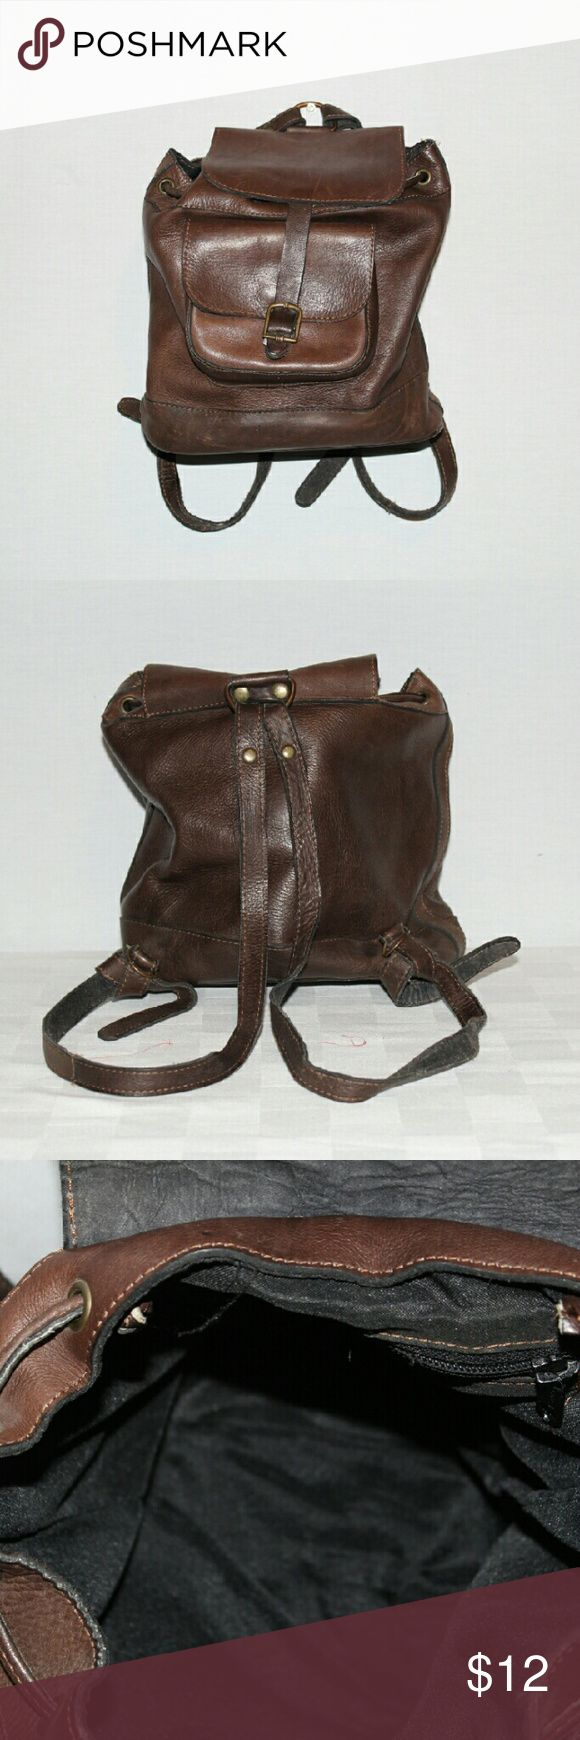 Small Leather Backpack/Bucket Bag Rustic Looking Leather Backpack/Bucket Bag, some minor scuff marks, that give this packpack character,  clean inside, no  rips in lining, magnetic fastener, with draw string. 1 outside pouch with magnetic fastener,  1 zippered pouch inside. Dimensions are length 9.5 inches, depth 9 inches, width 4 inches. unknown  Bags Backpacks